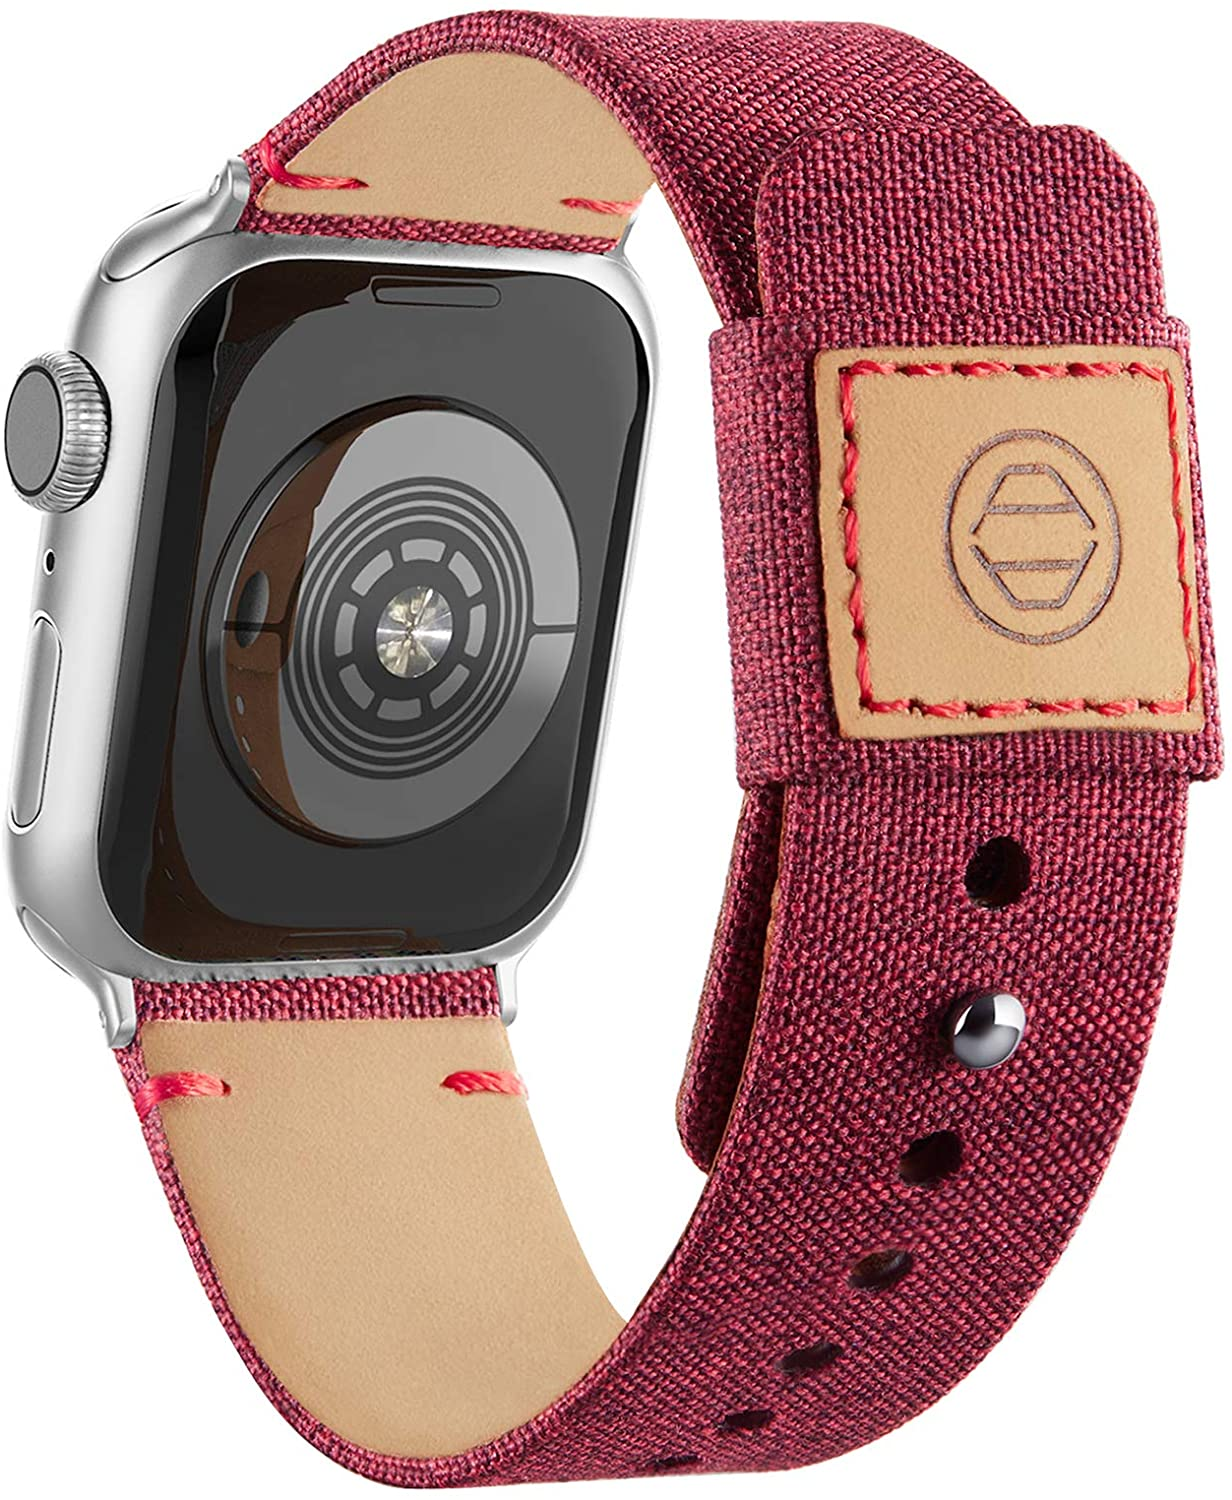 Adepoy Fabric Cloth Bands Compatible with Apple Watch 44mm 42mm 40mm 38mm, Canvas Strap with Soft Genuine Leather Lining and Snap Button for Apple iwatch Series 6/5/4/3/2/1 SE,Wine 42/44mm